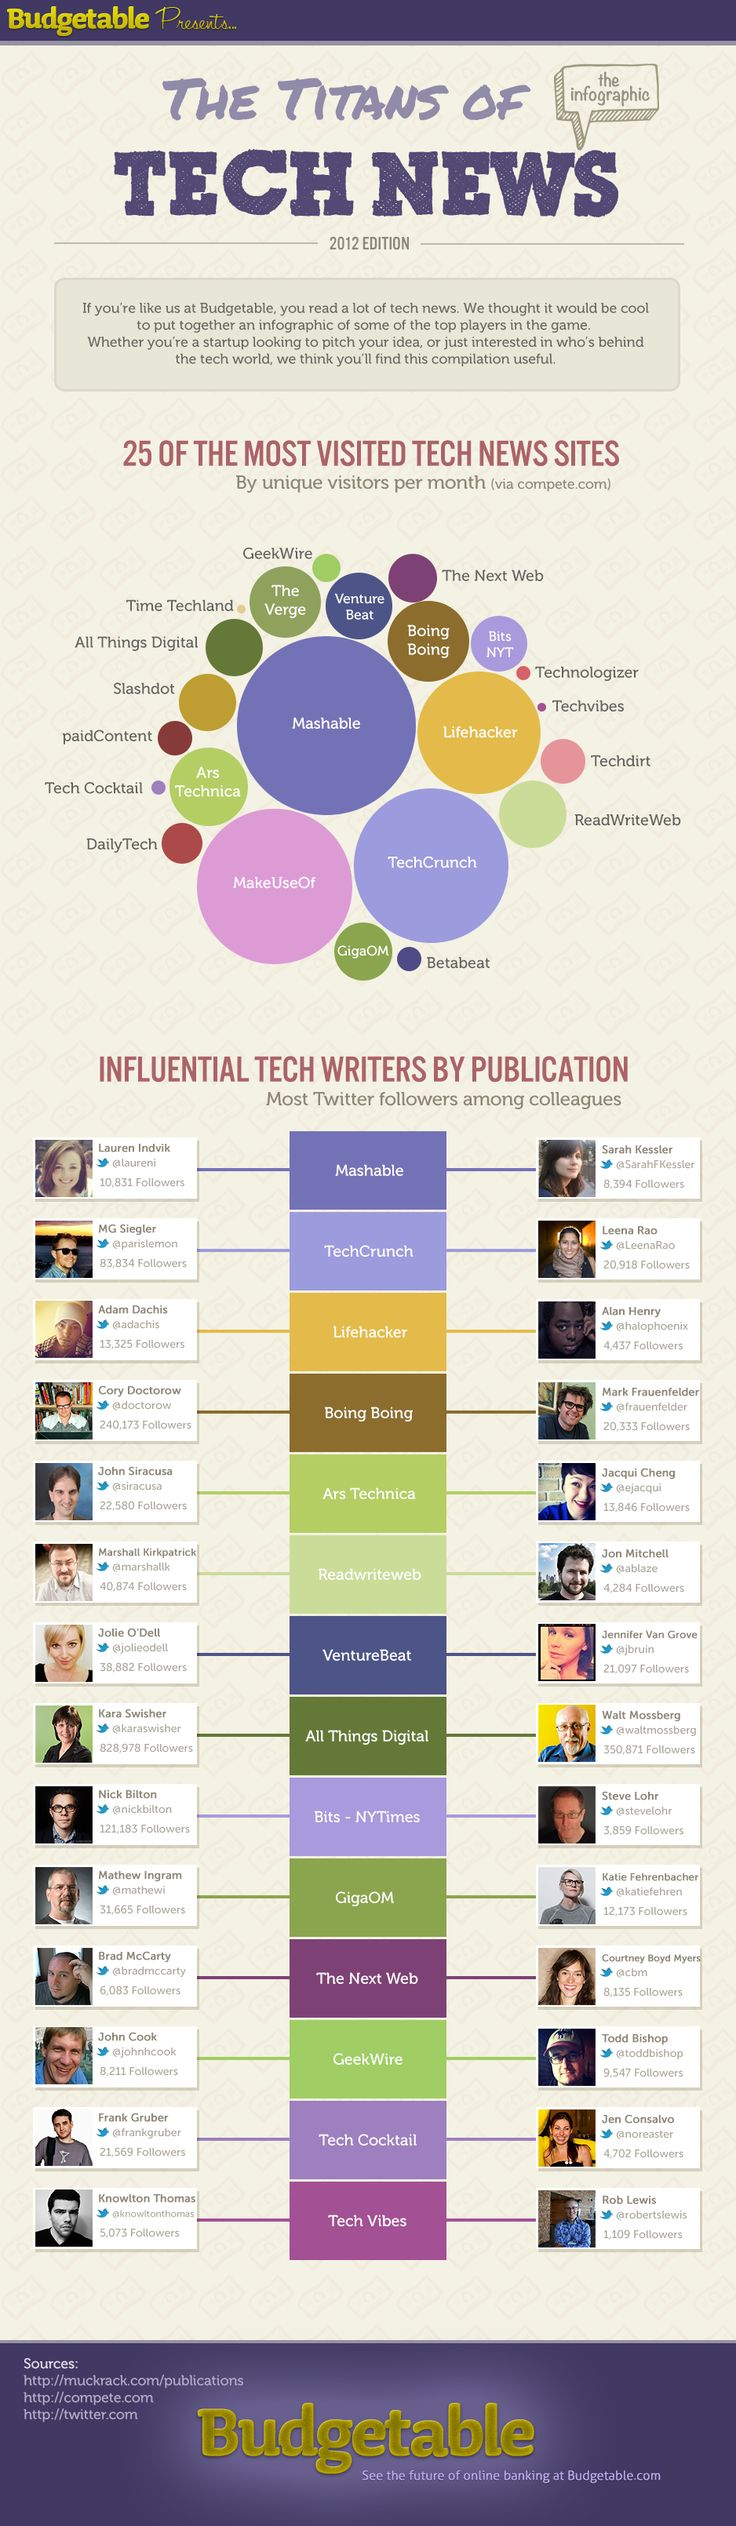 The Titans of Tech News Infographic - good to know for #PR and media relations working with new media and technology clients